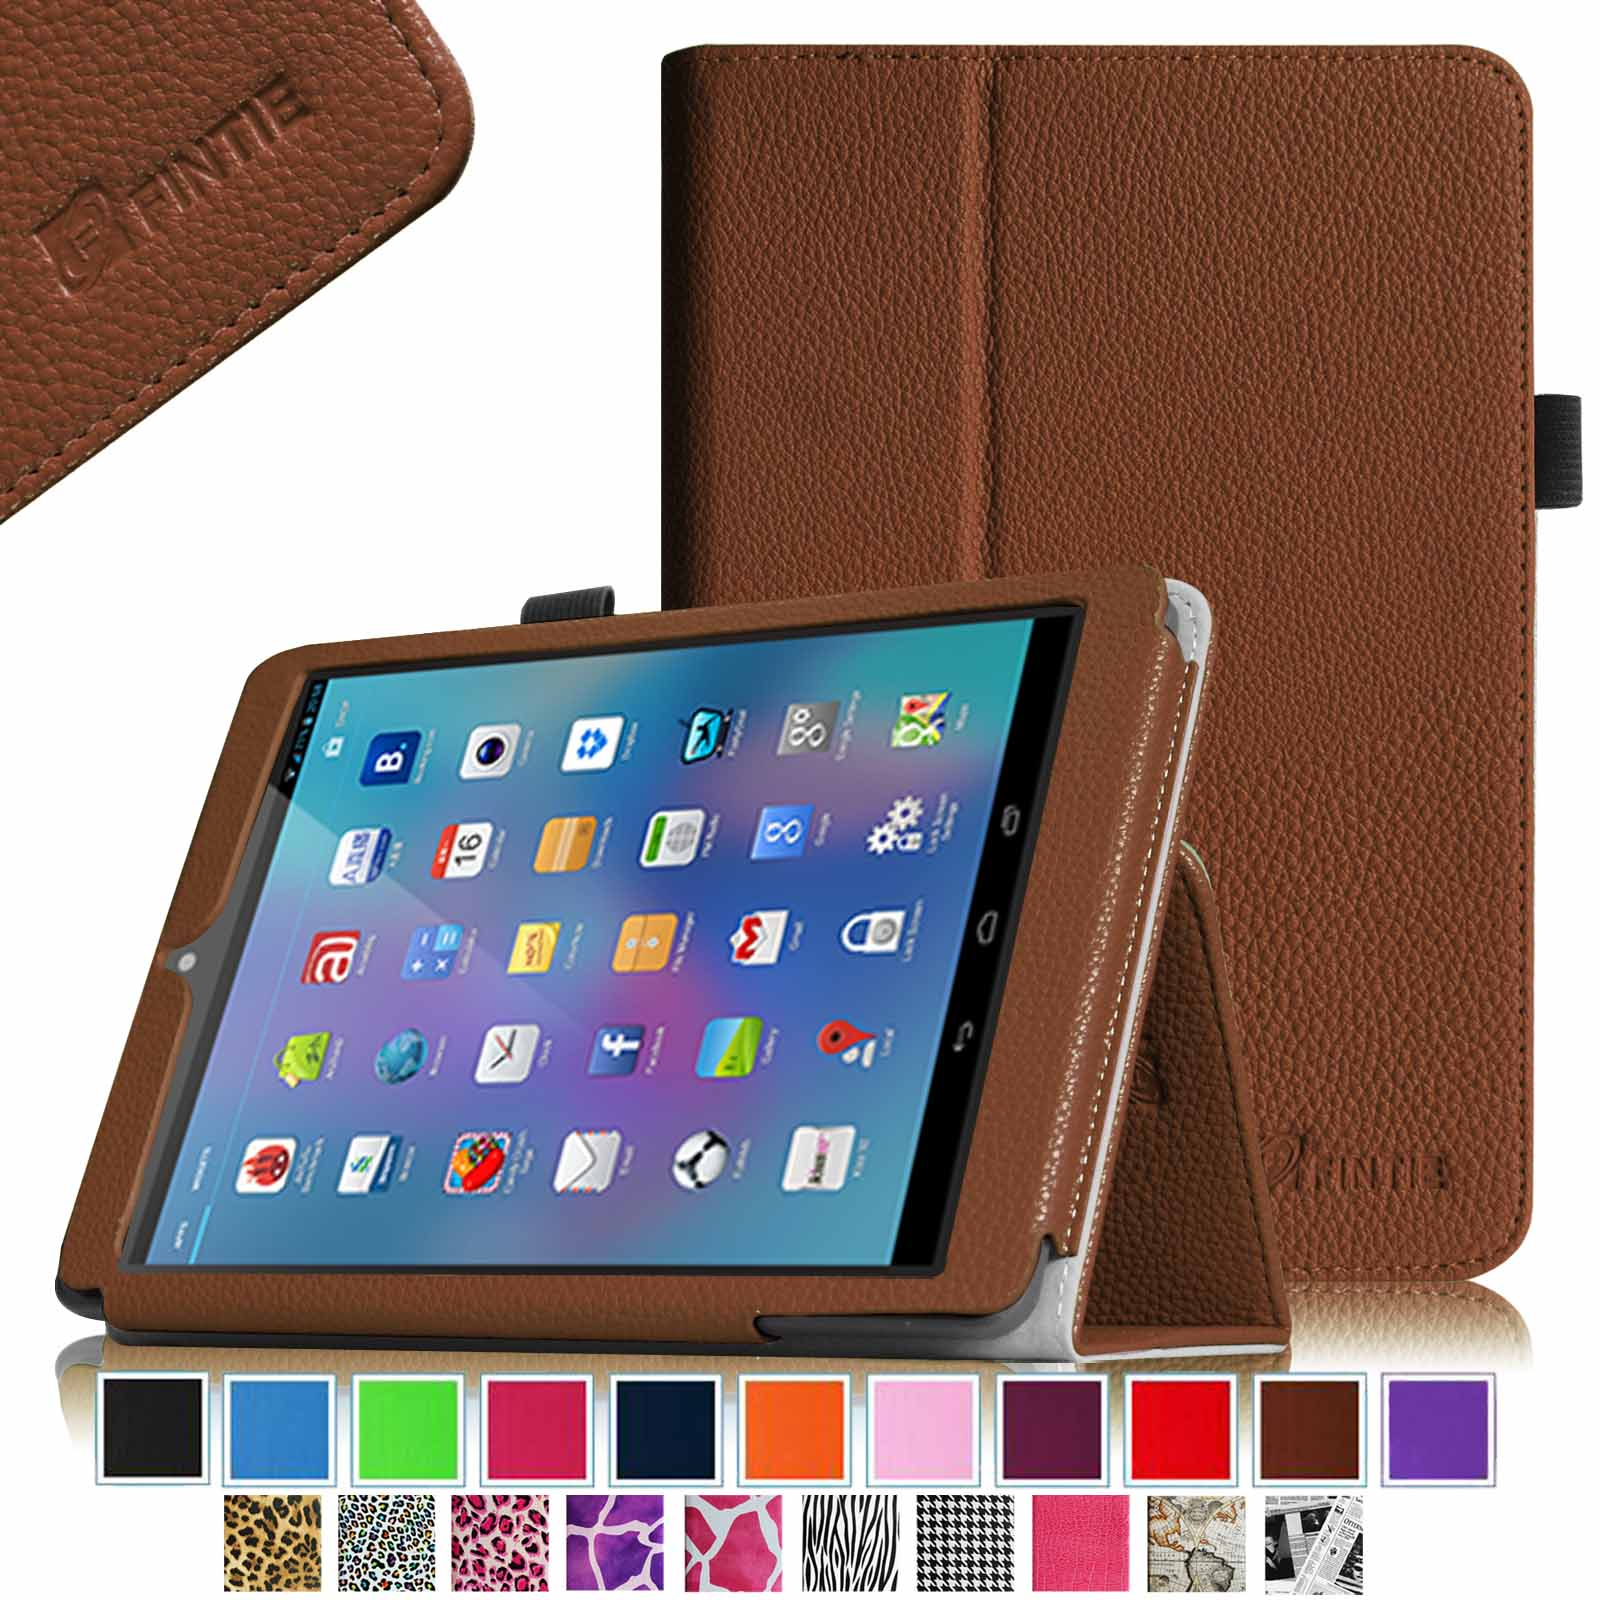 "Fintie Premium PU Leather Case Cover with Stylus Holder For Nextbook 8(NX785QC8G) 7.85"" Android Tablet, Brown"